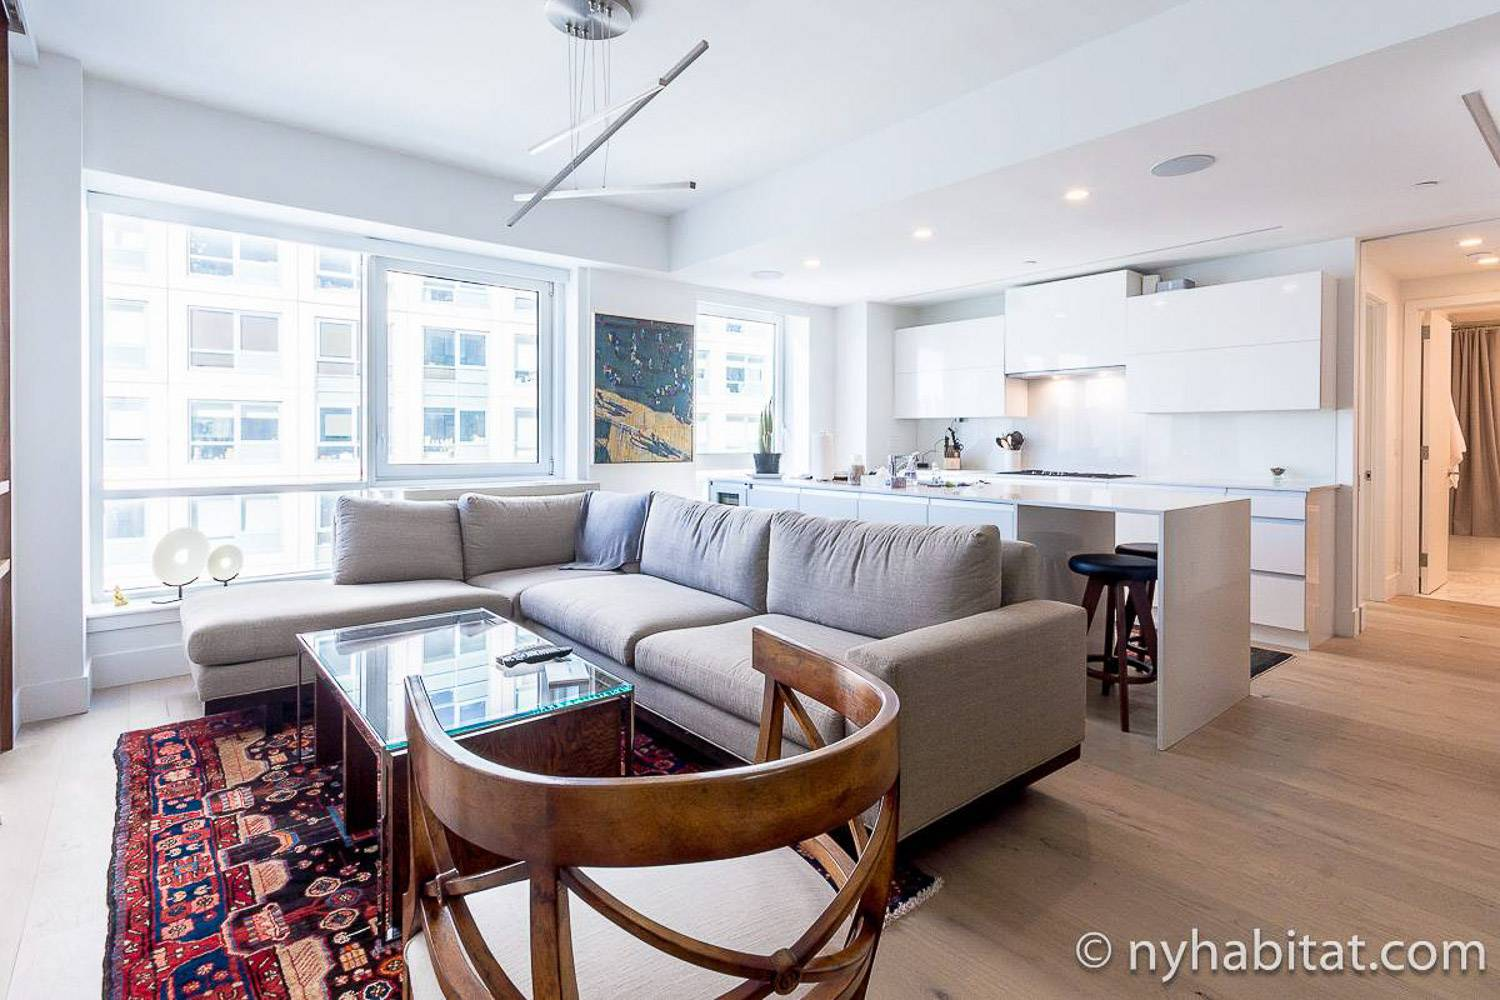 Image of living room and open kitchen of furnished rental NY-17853 in Williamsburg, Brooklyn